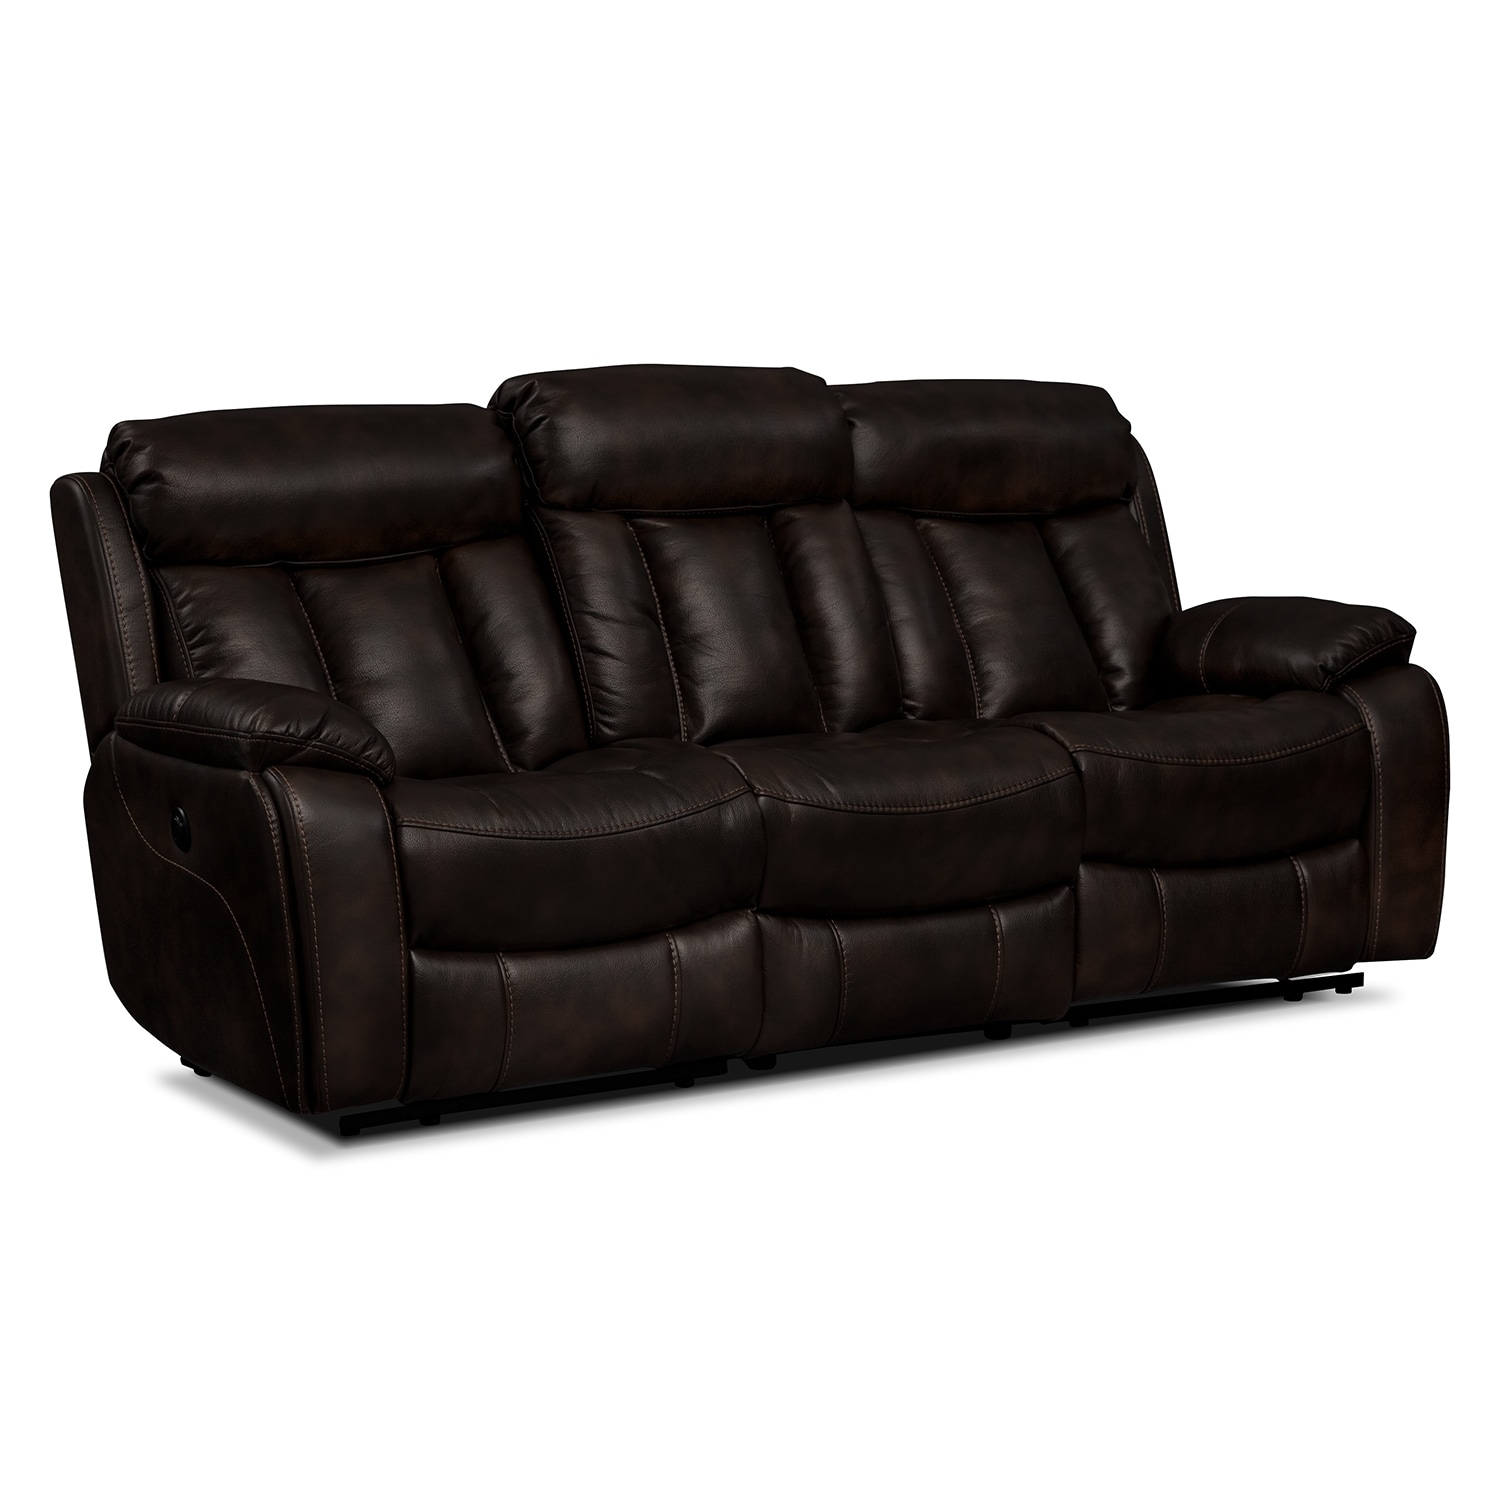 Diablo Power Reclining Sofa - Walnut